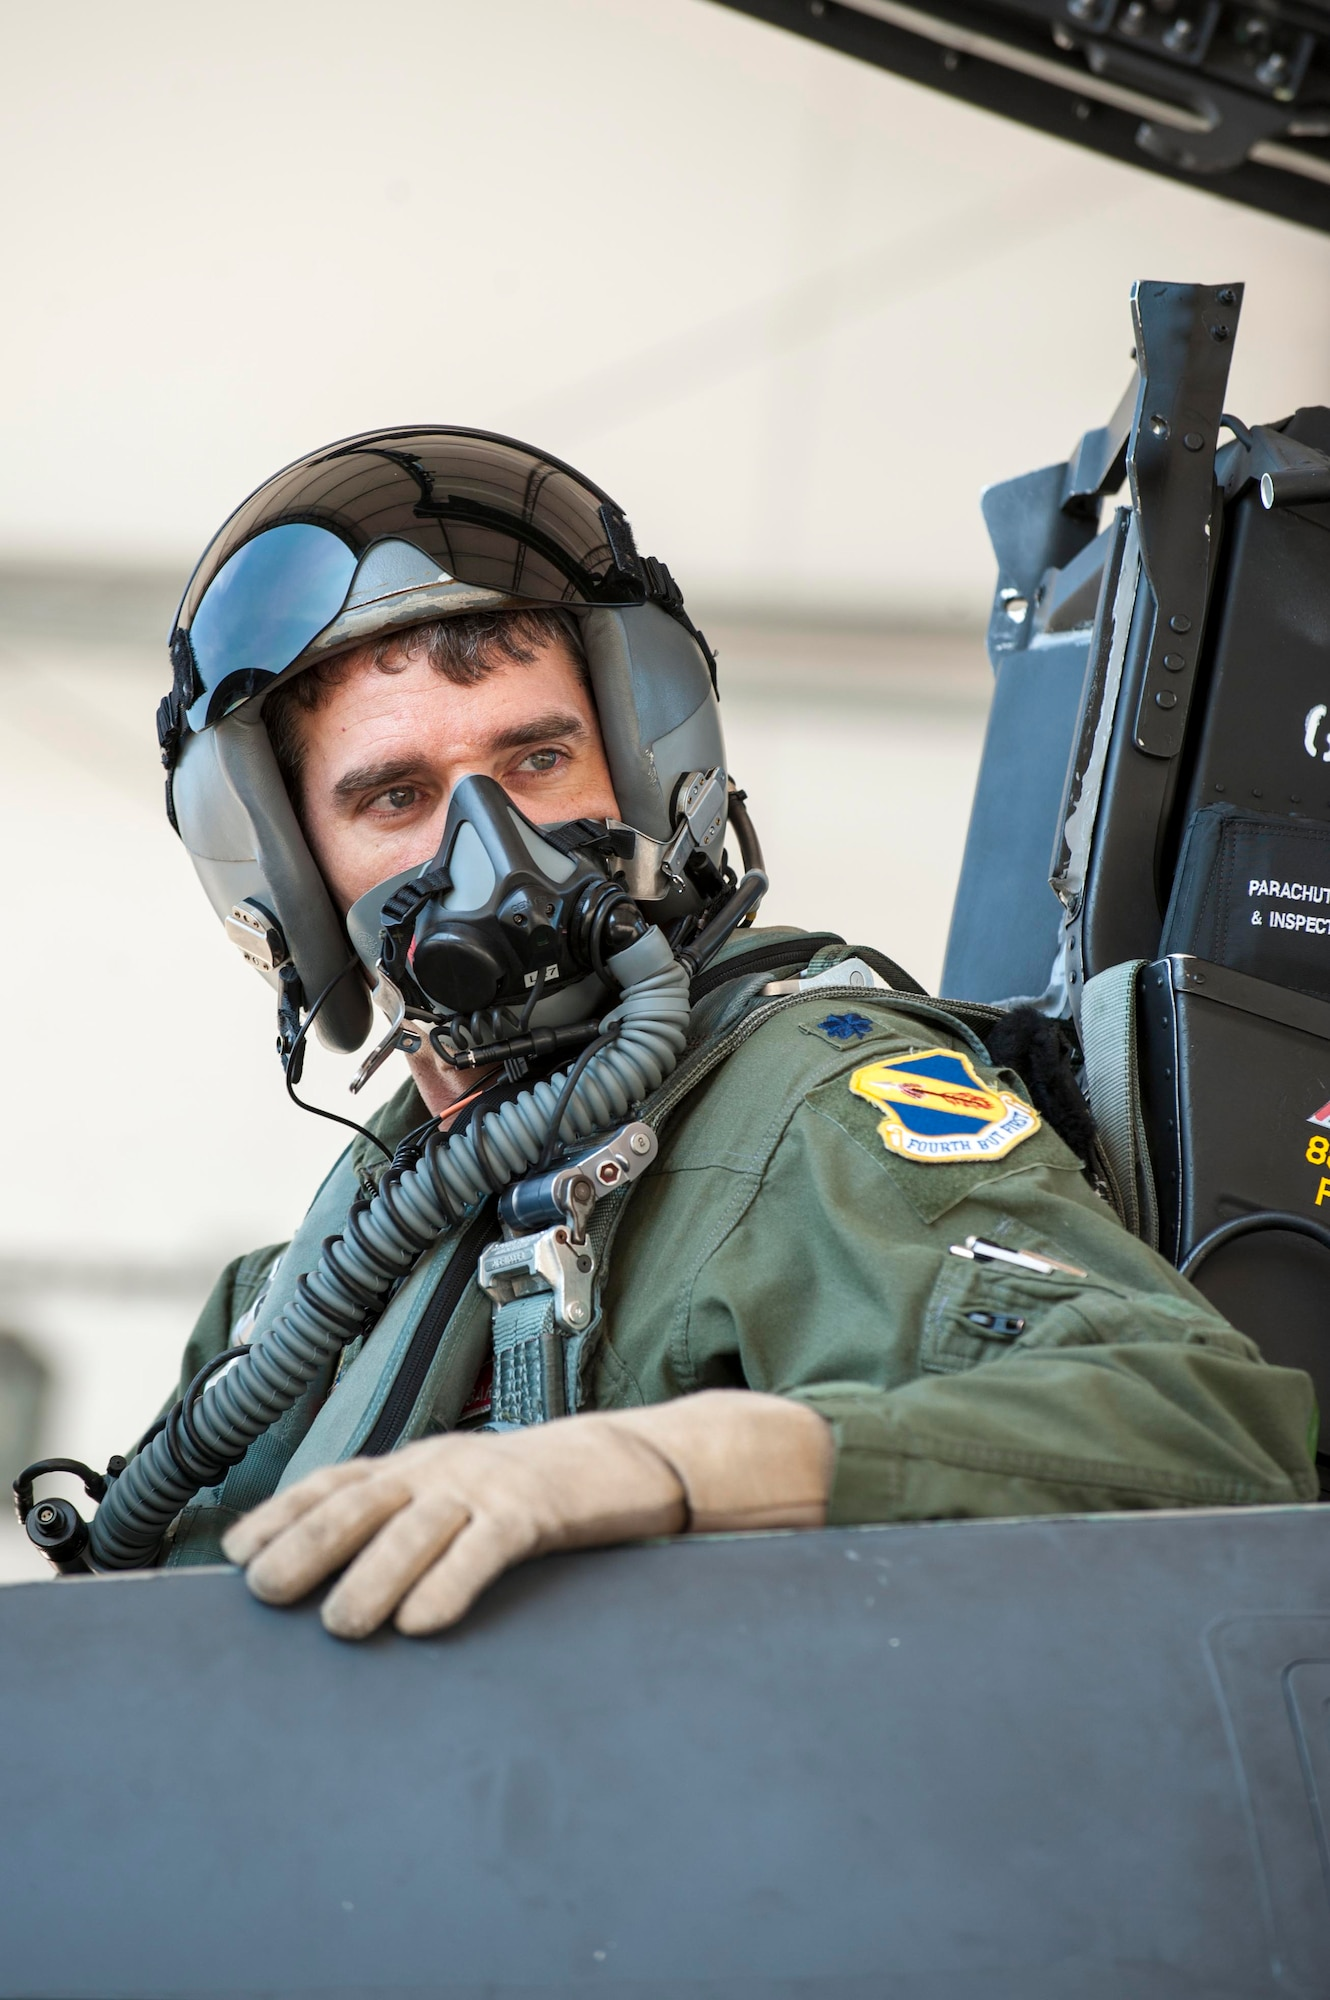 Lt. Col. Paul Hibbard, a 333rd Fighter Squadron instructor pilot, performs preflight checks before a training sortie, July 22, 2015, at Seymour Johnson Air Force Base, N.C. The training flight marked Hibbard's 3,000th flying hour in the F-15E Strike Eagle, which he has been flying for more than two decades. (U.S. Air Force photo/Airman Shawna L. Keyes)